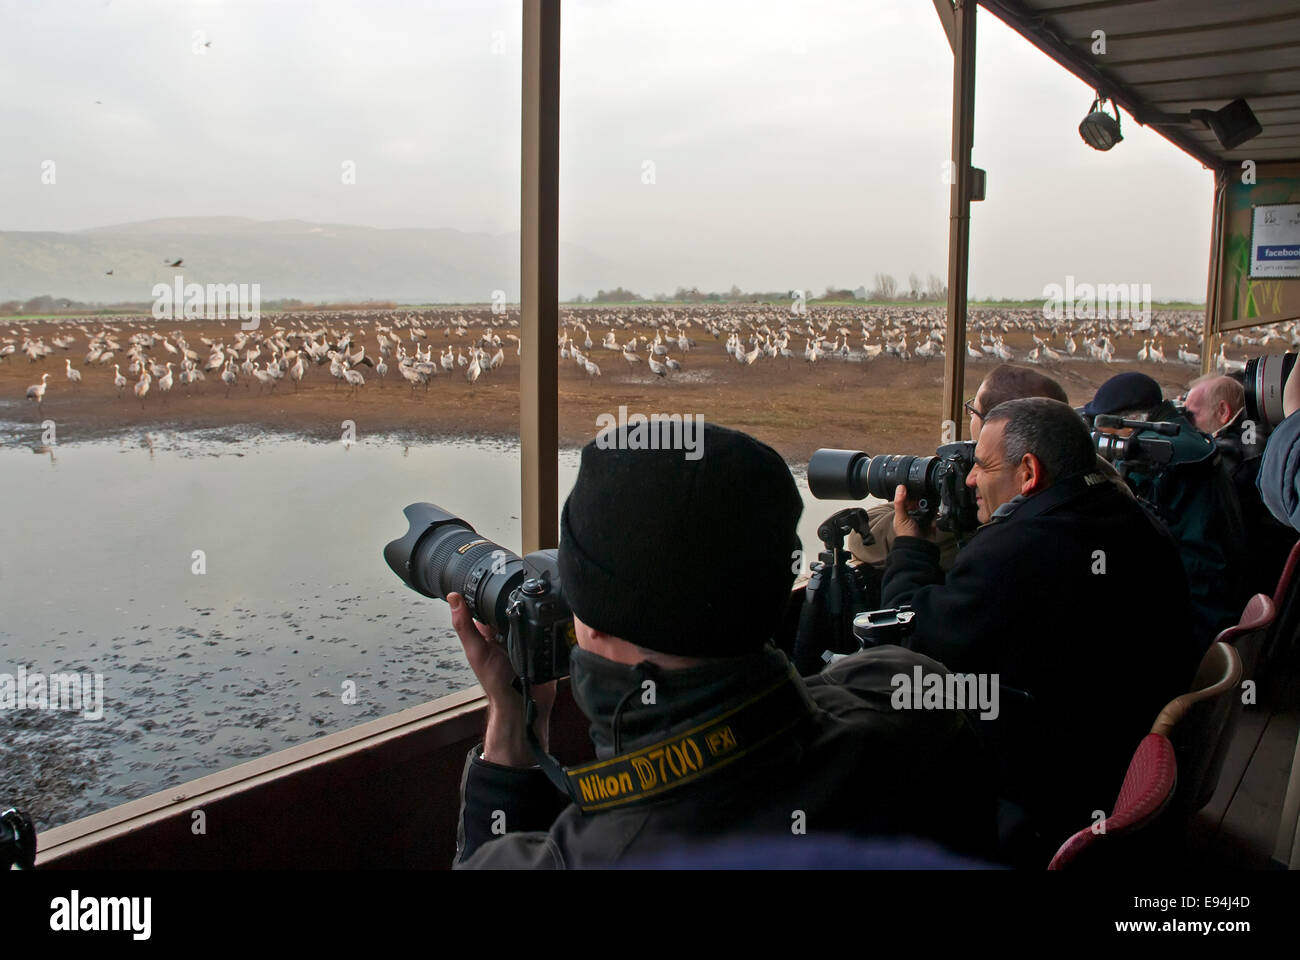 Photographers in the Hula valley, Israel - Stock Image